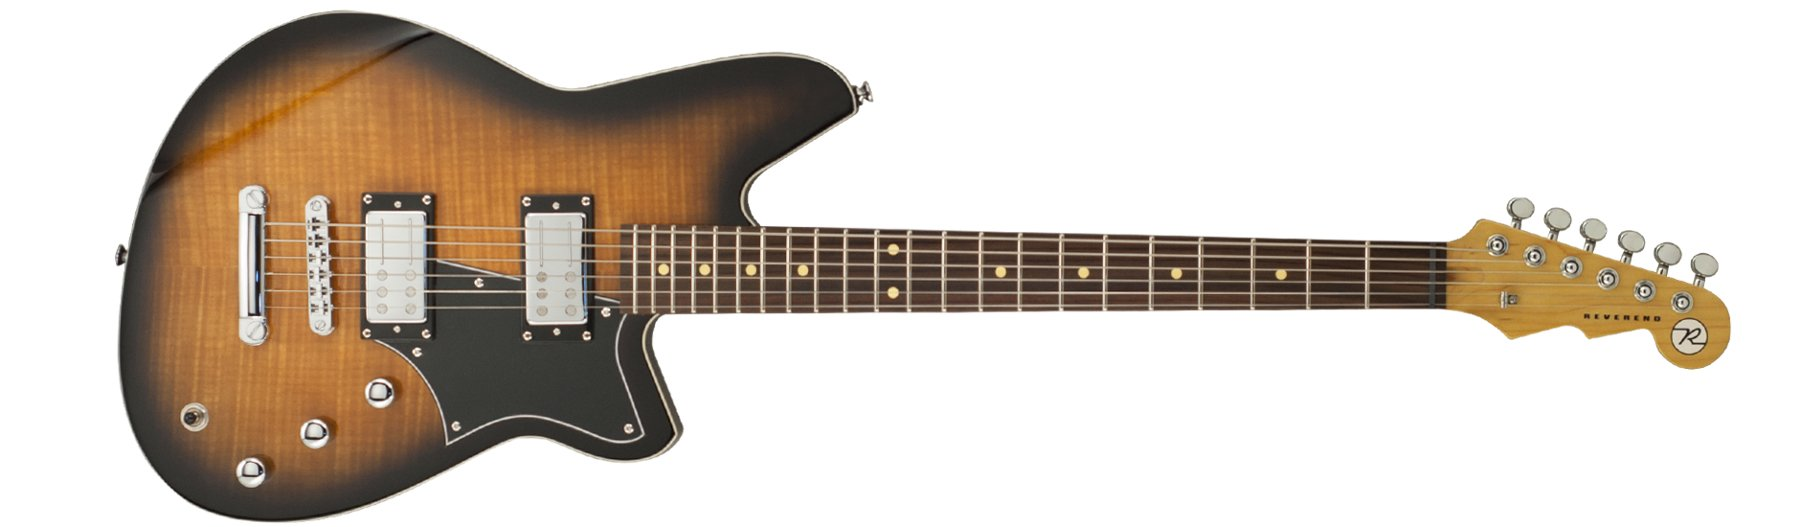 Coffee Burst Flame Maple Electric Guitar